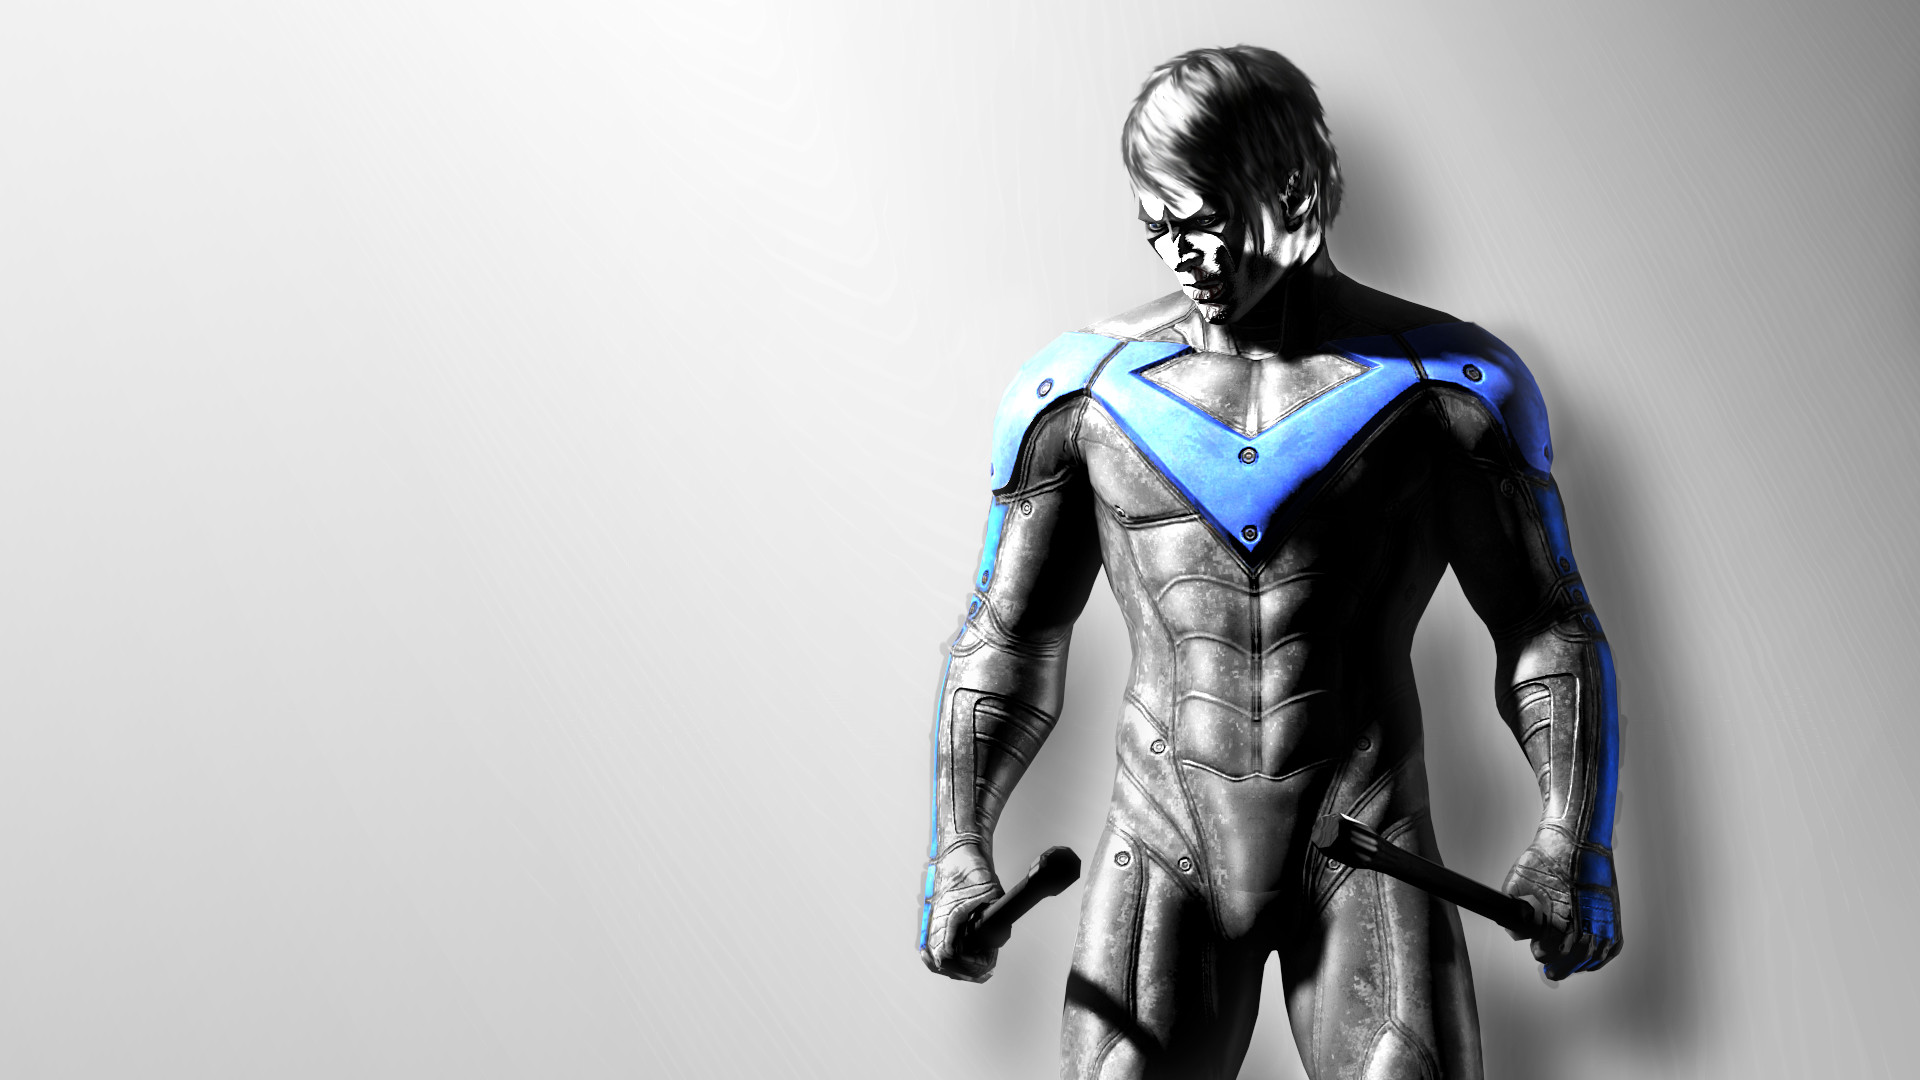 1920x1080 Nightwing Wallpapers High Resolution For Desktop Wallpaper 1920 x 1080 px  623.08 KB injustice blue new